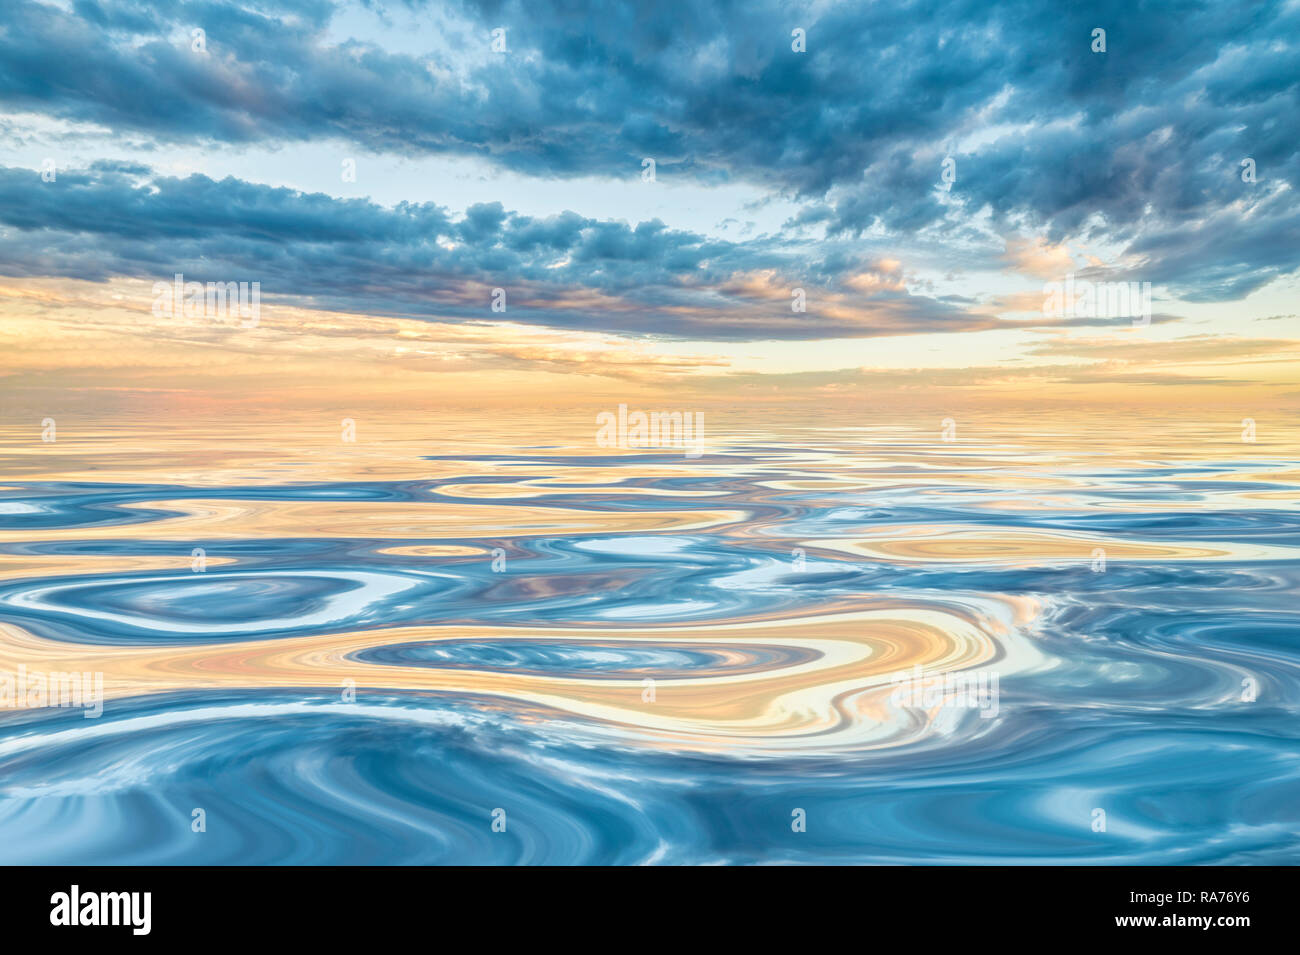 Dawn or dusk on smooth water - Stock Image